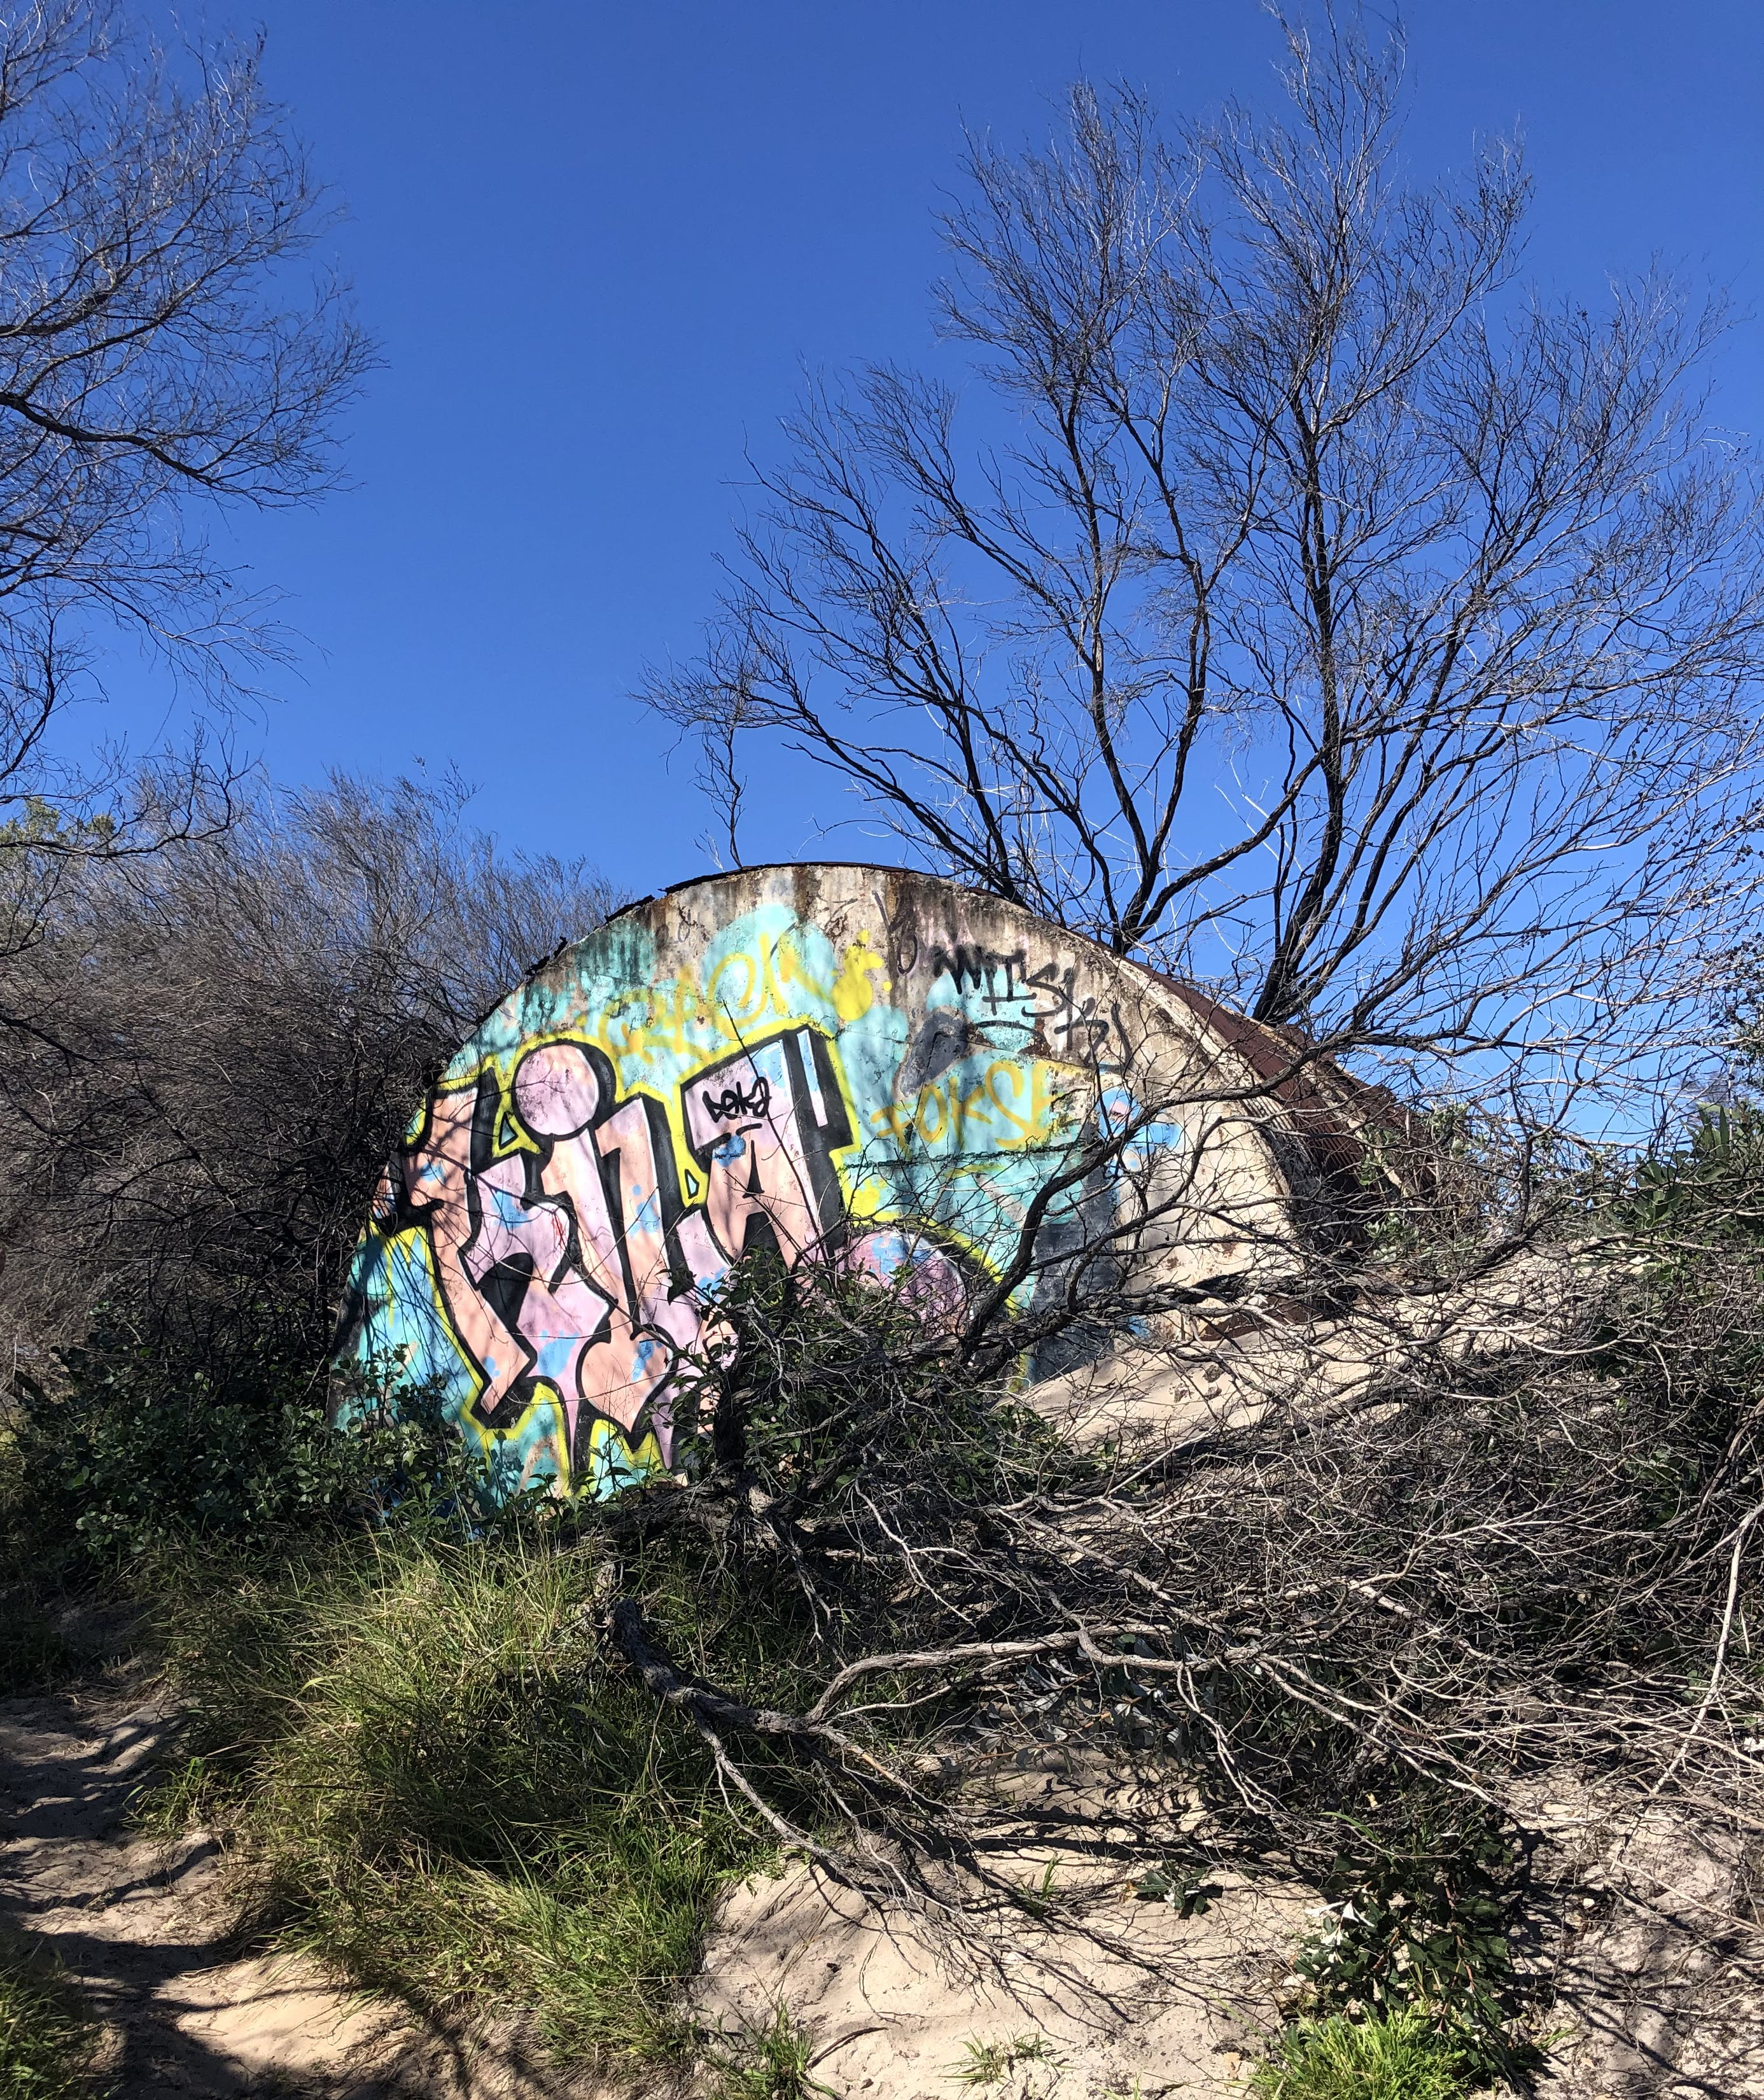 Graffiti during illegal access to area.jpg